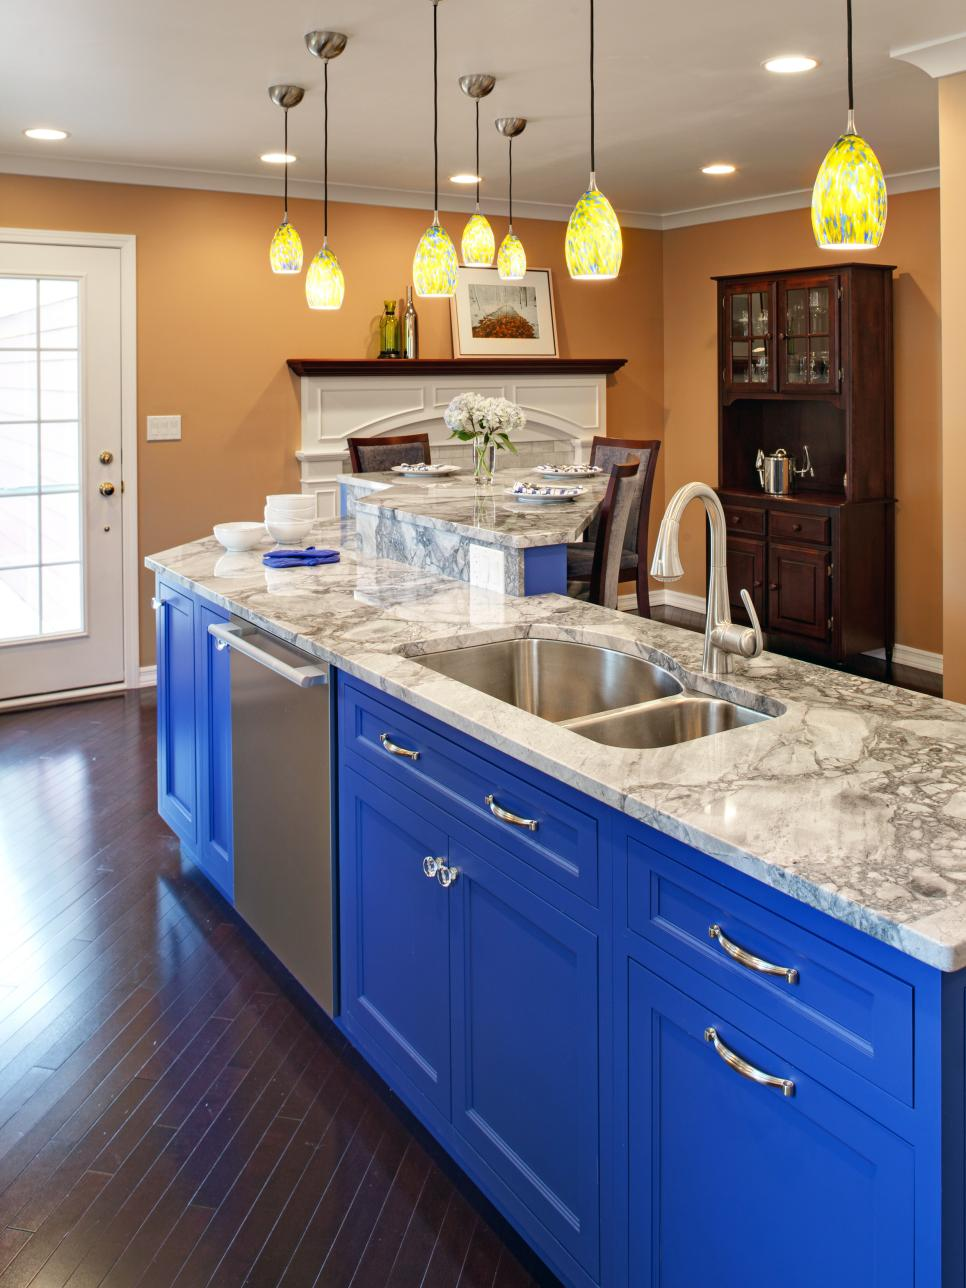 Colored Kitchen Cabinets hgtv's best pictures of kitchen cabinet color ideas from top